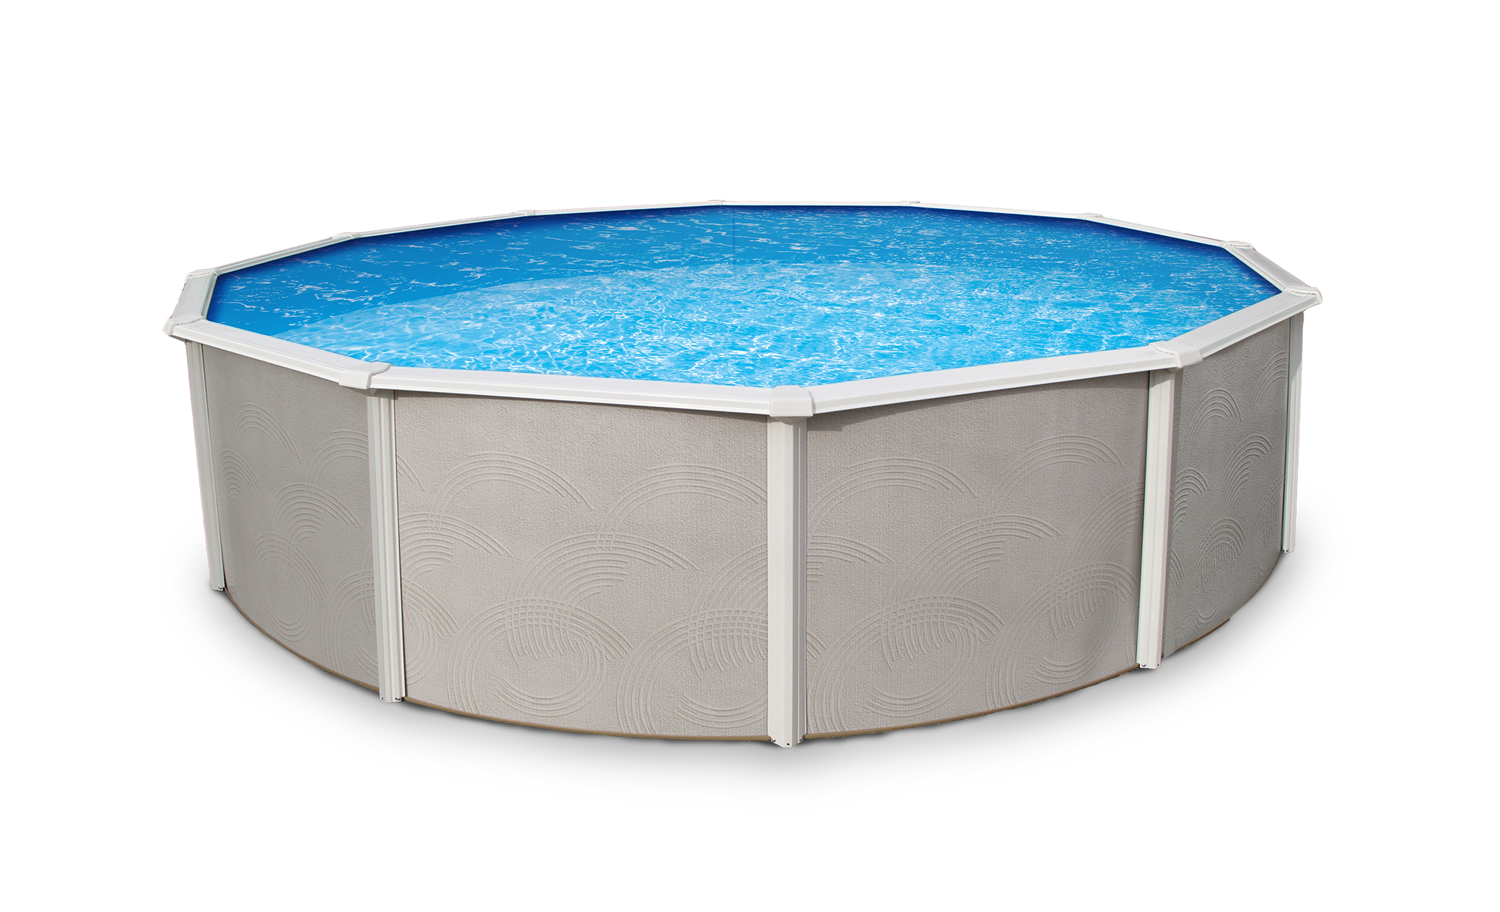 24 39 Round Above Ground Pools Royal Swimming Pools